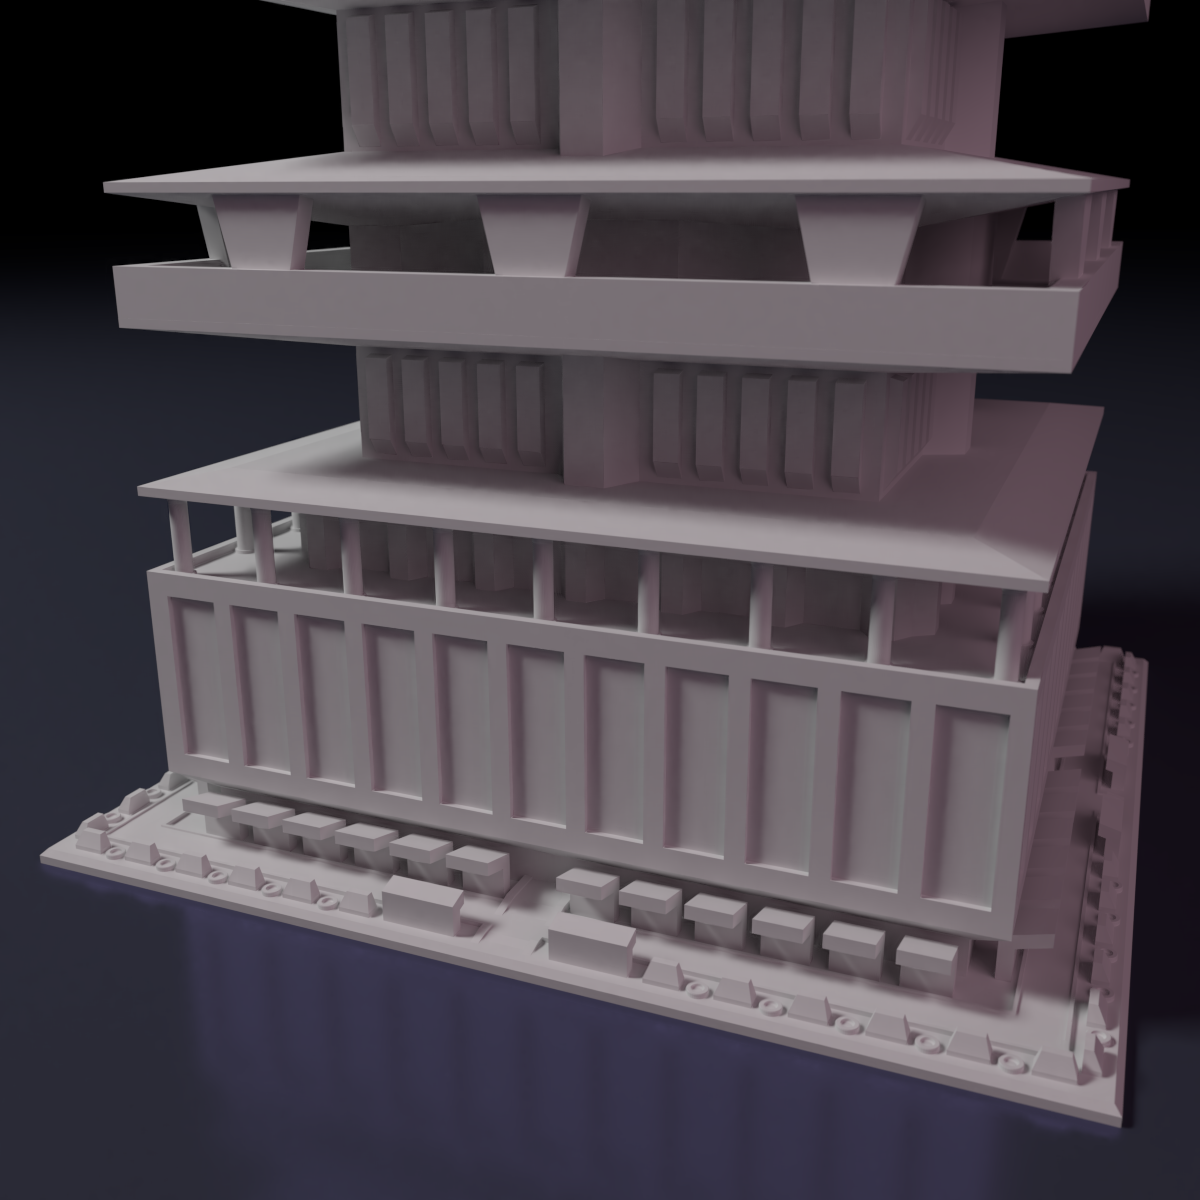 Downtown-highrise-2.png Download STL file Downtown highrise - Building - For board games like Monsterpocalypse • 3D printable design, Rayjunx